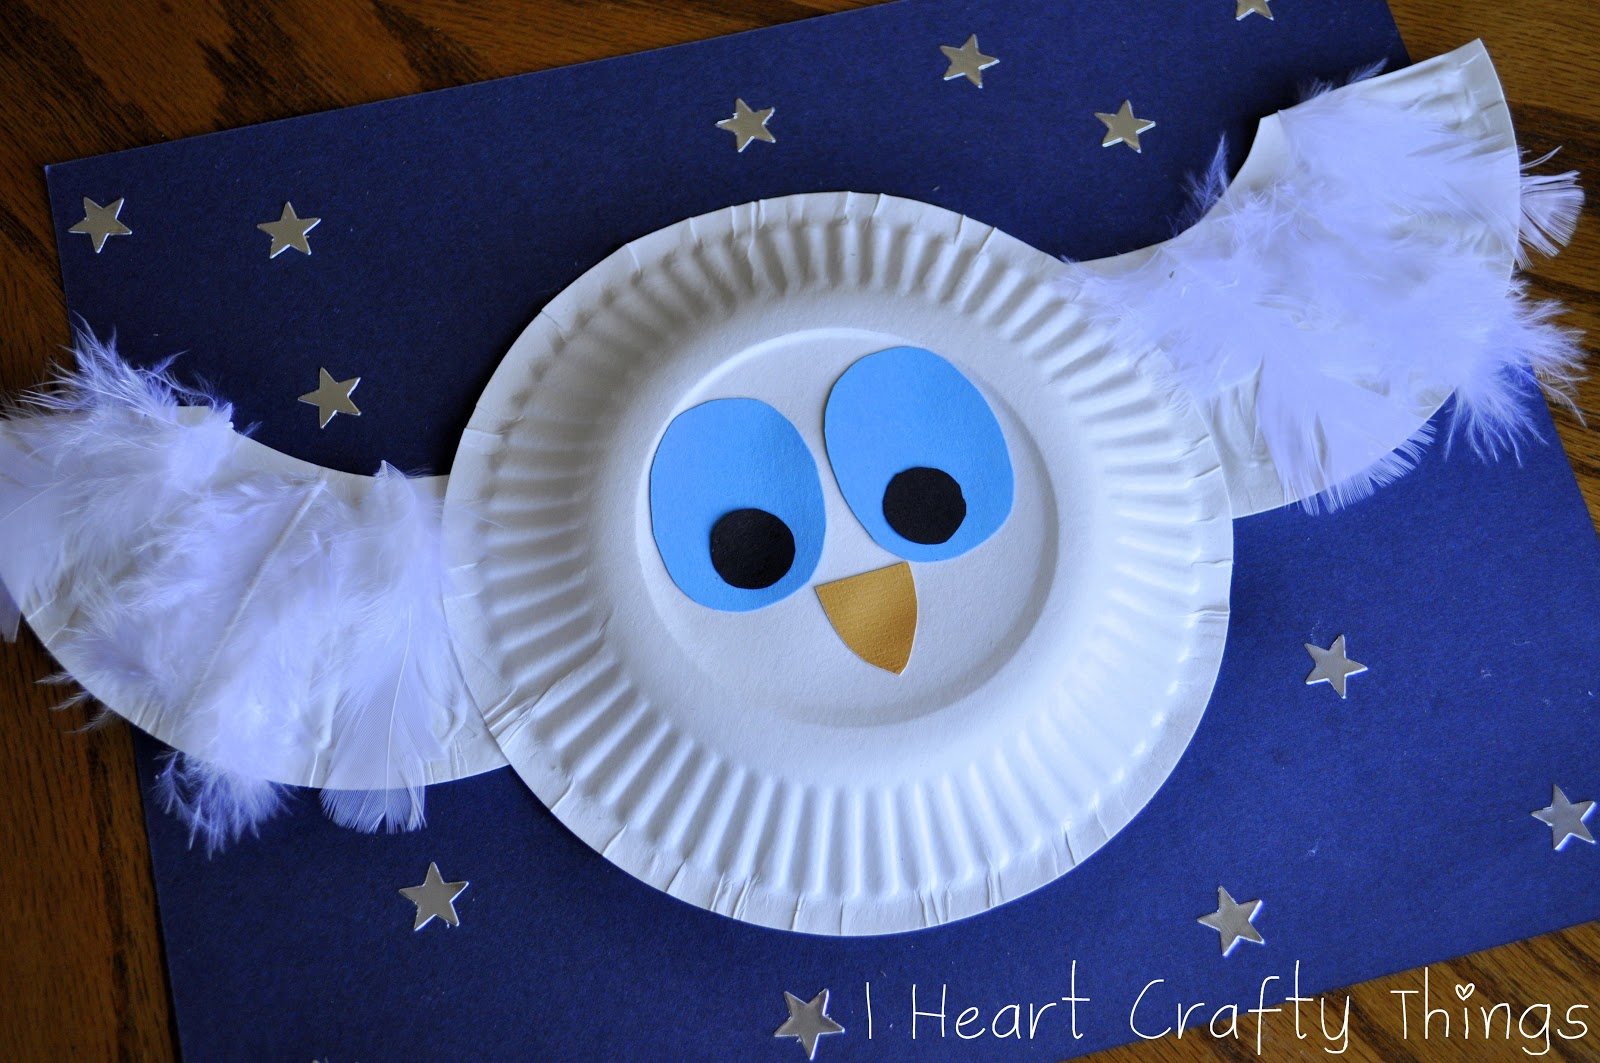 The Little White Owl Craft & The Little White Owl Craft | I Heart Crafty Things